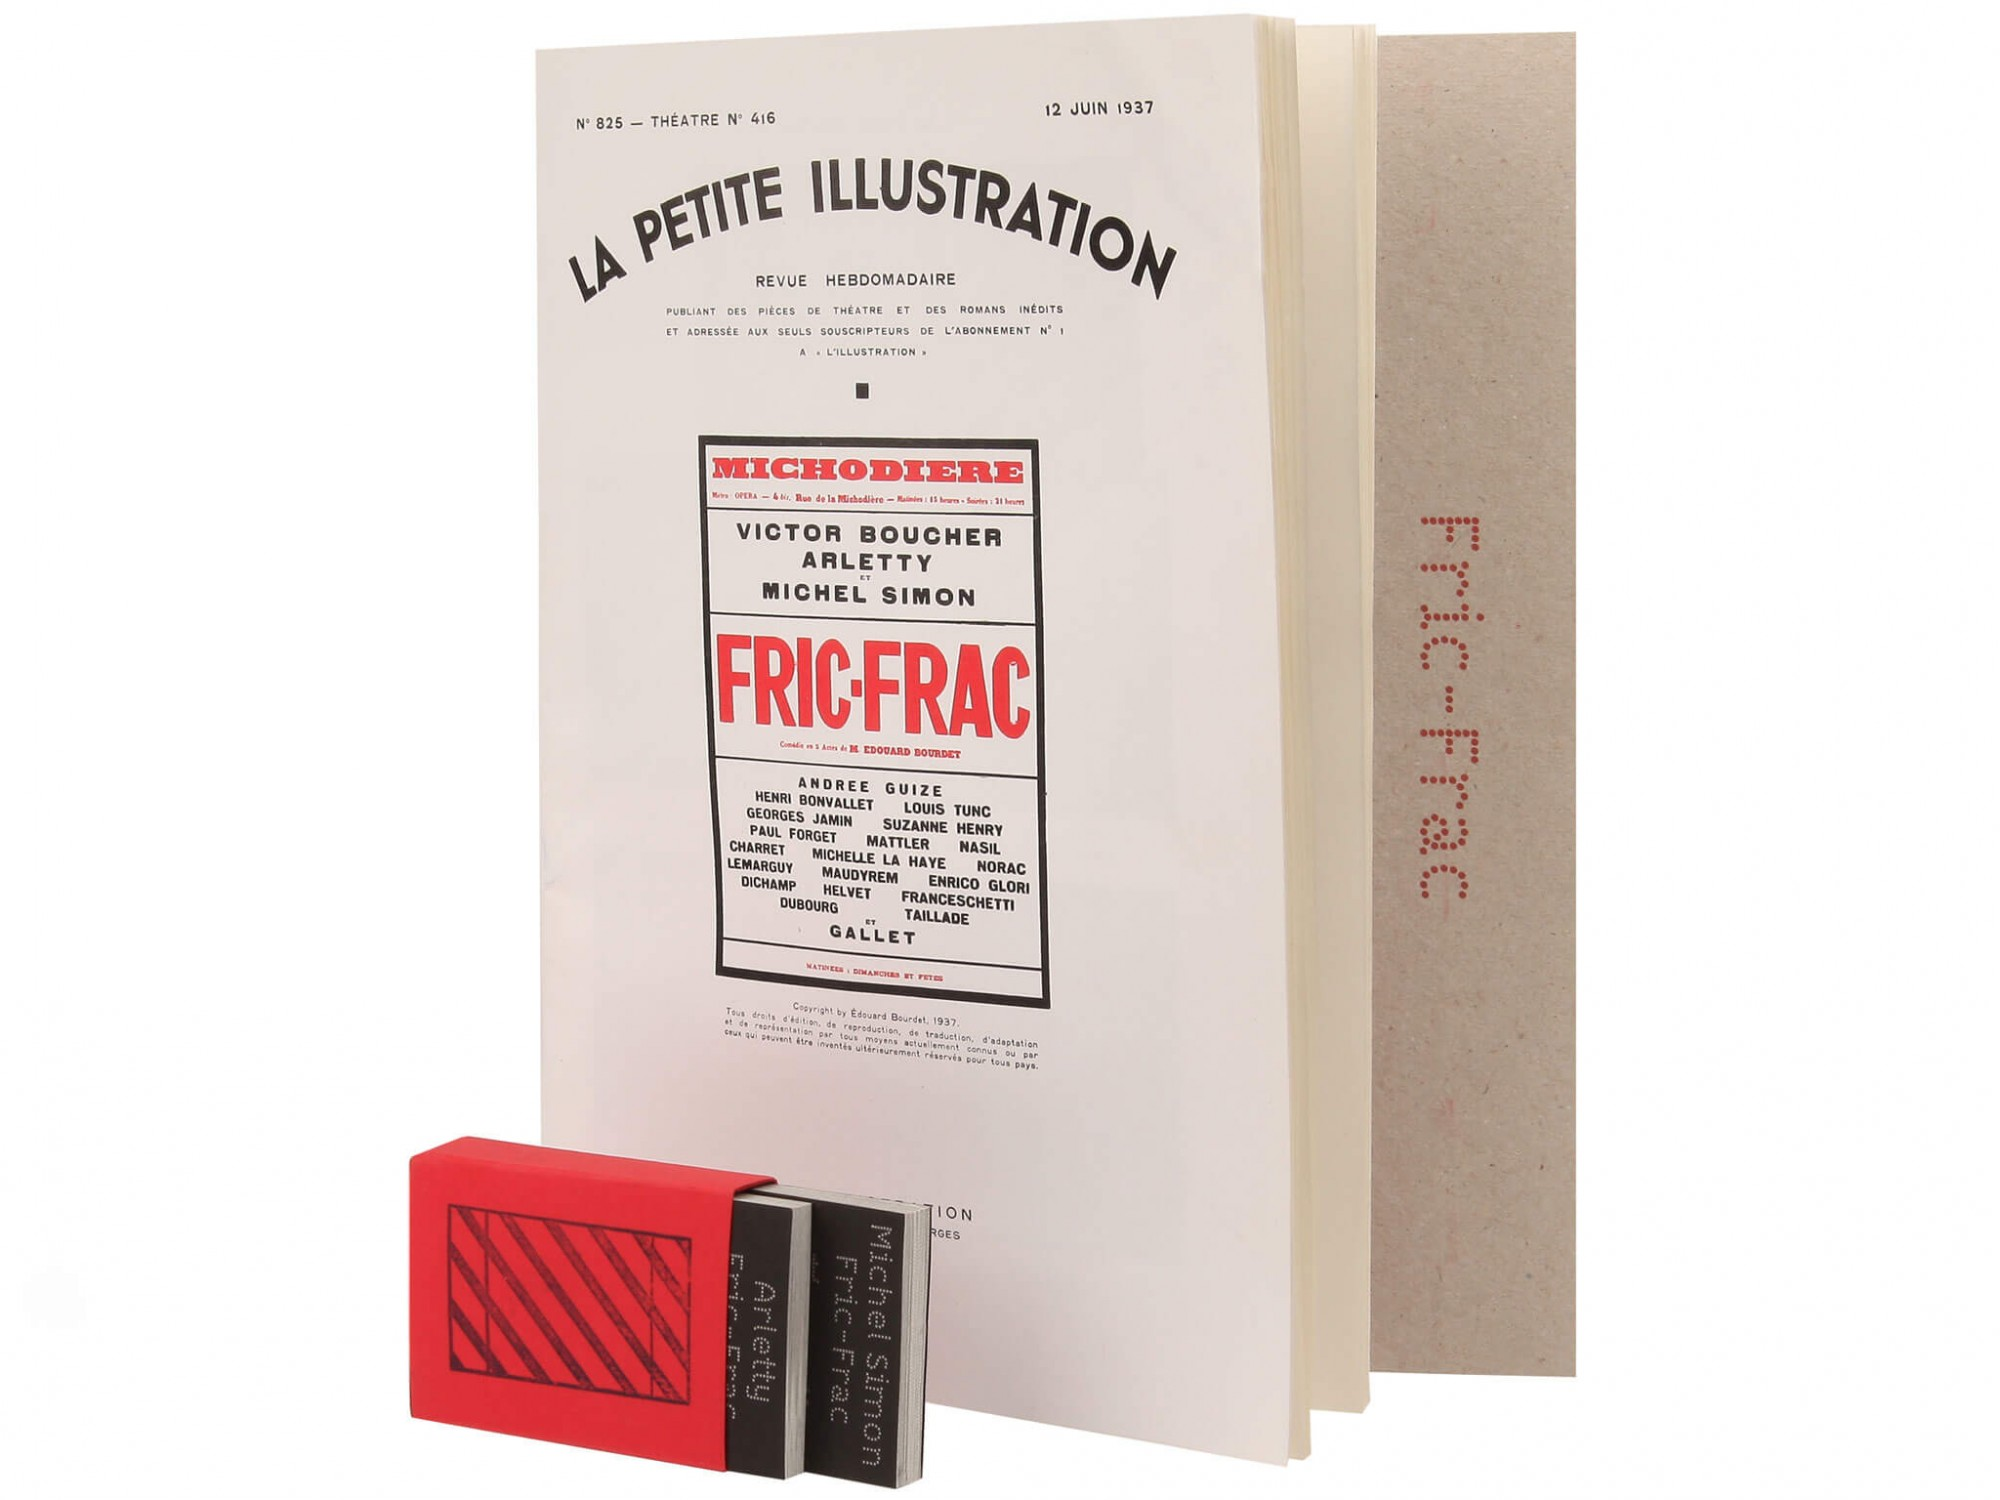 Fric-Frac Éditions cent pages Edouard Bourdet Fac-similé couverture La Petite Illustration